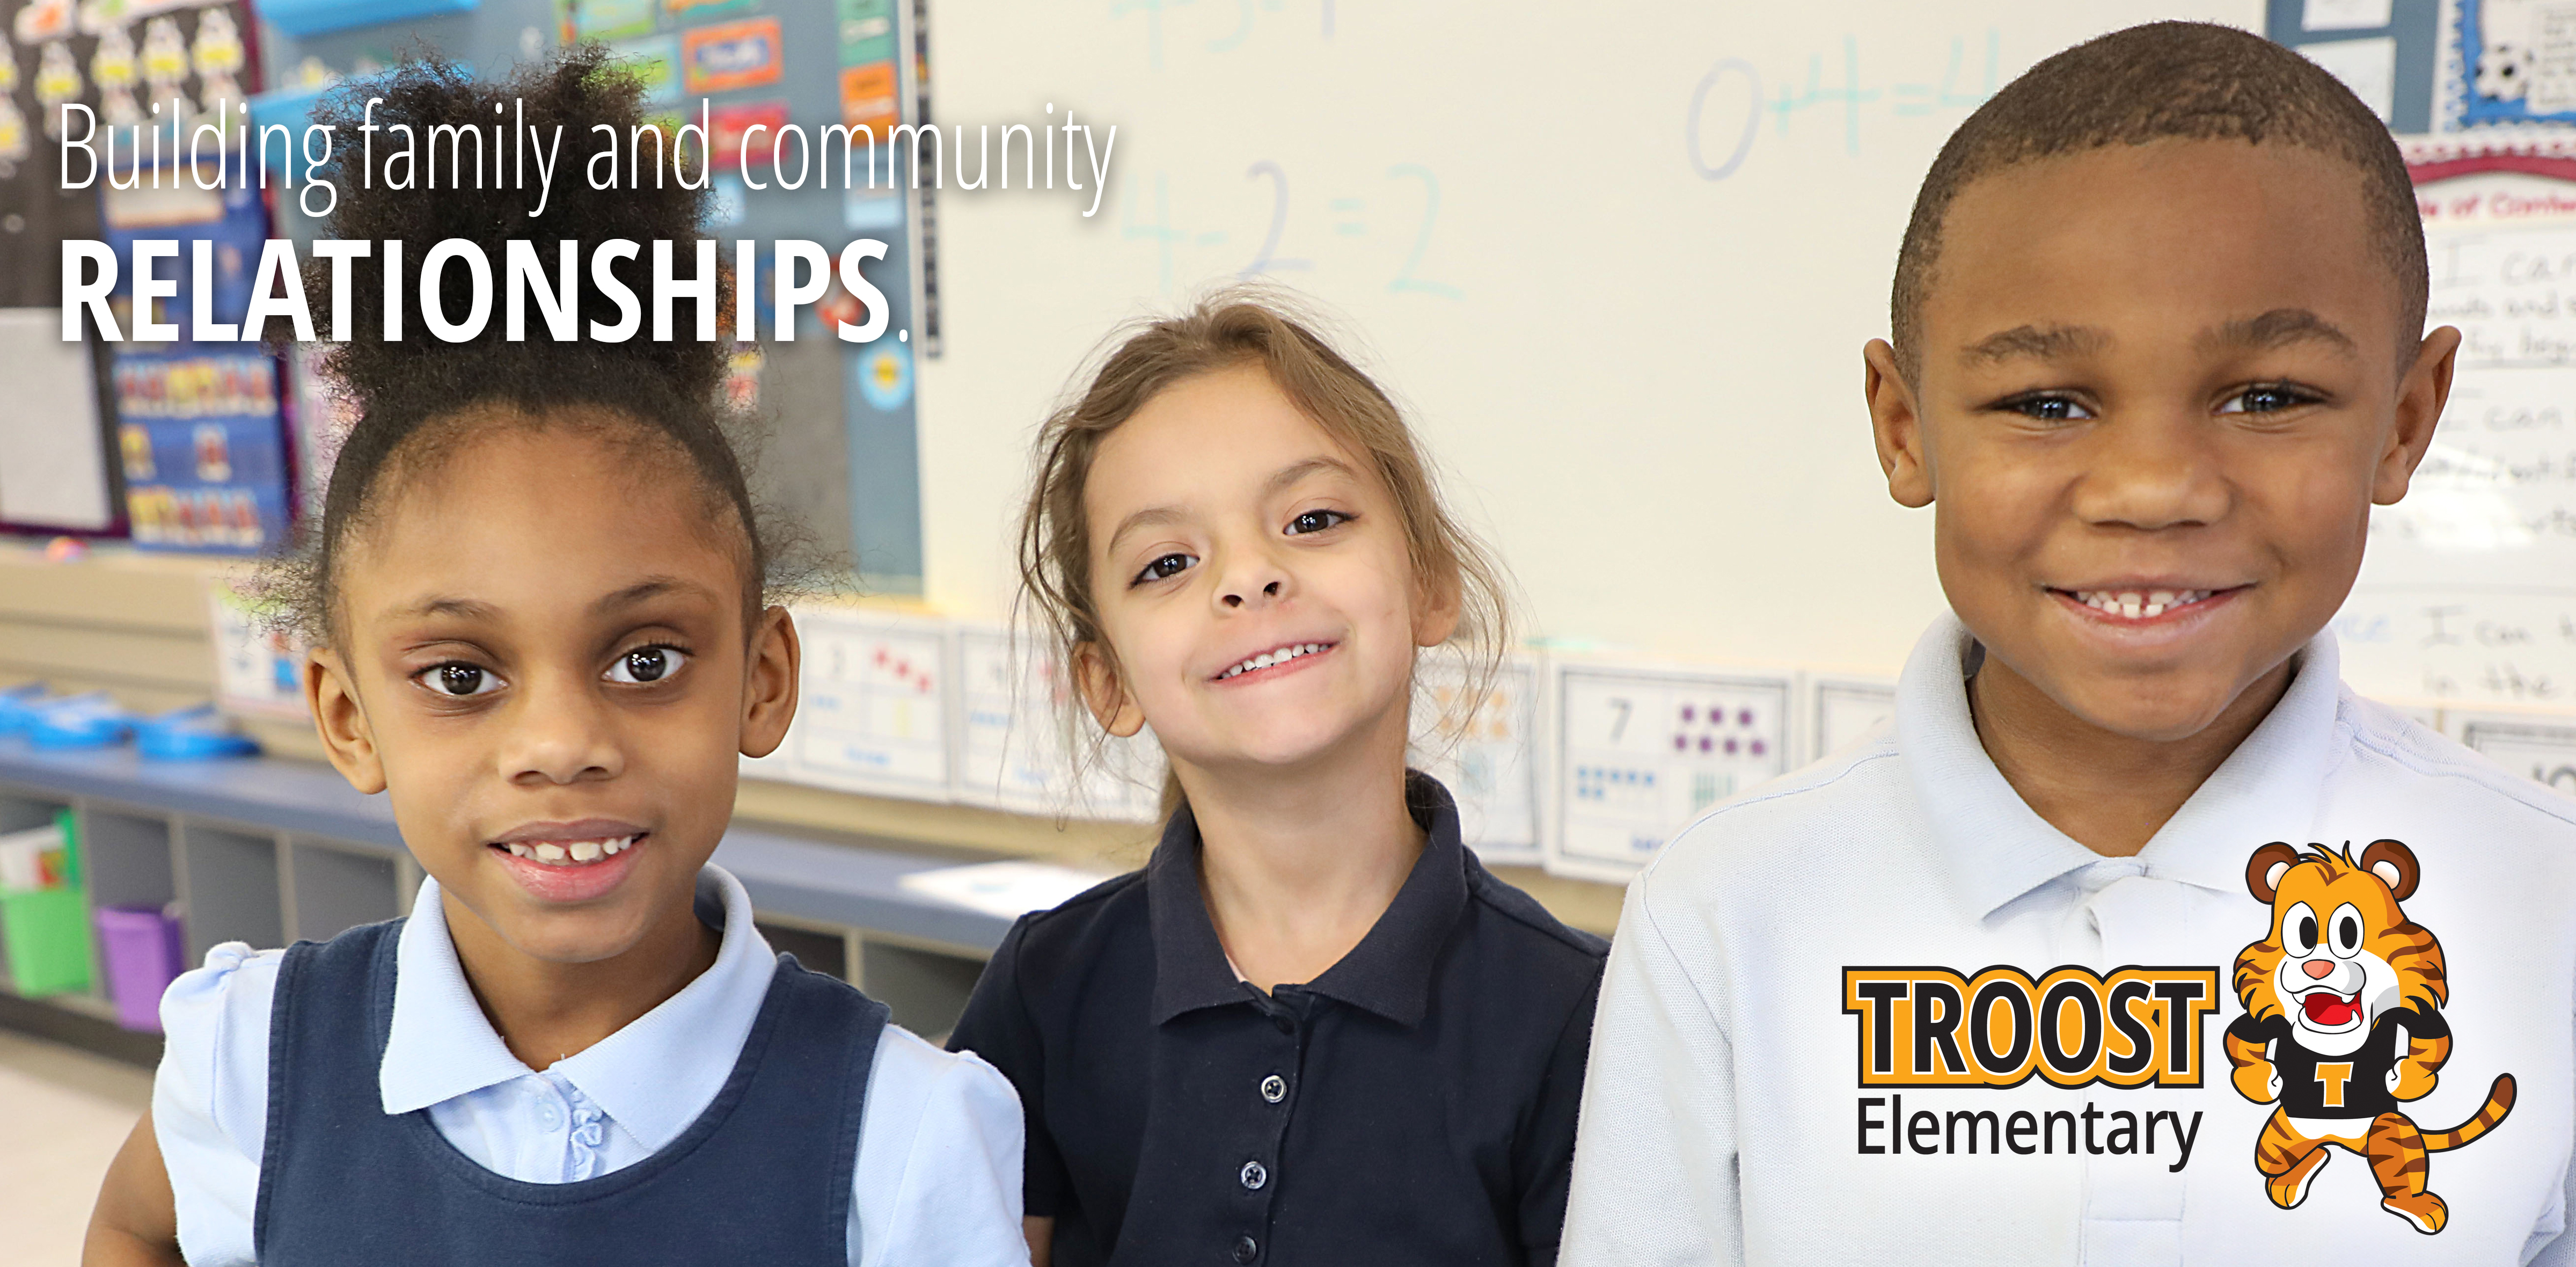 Troost kids with the tagline Building family and community relationships